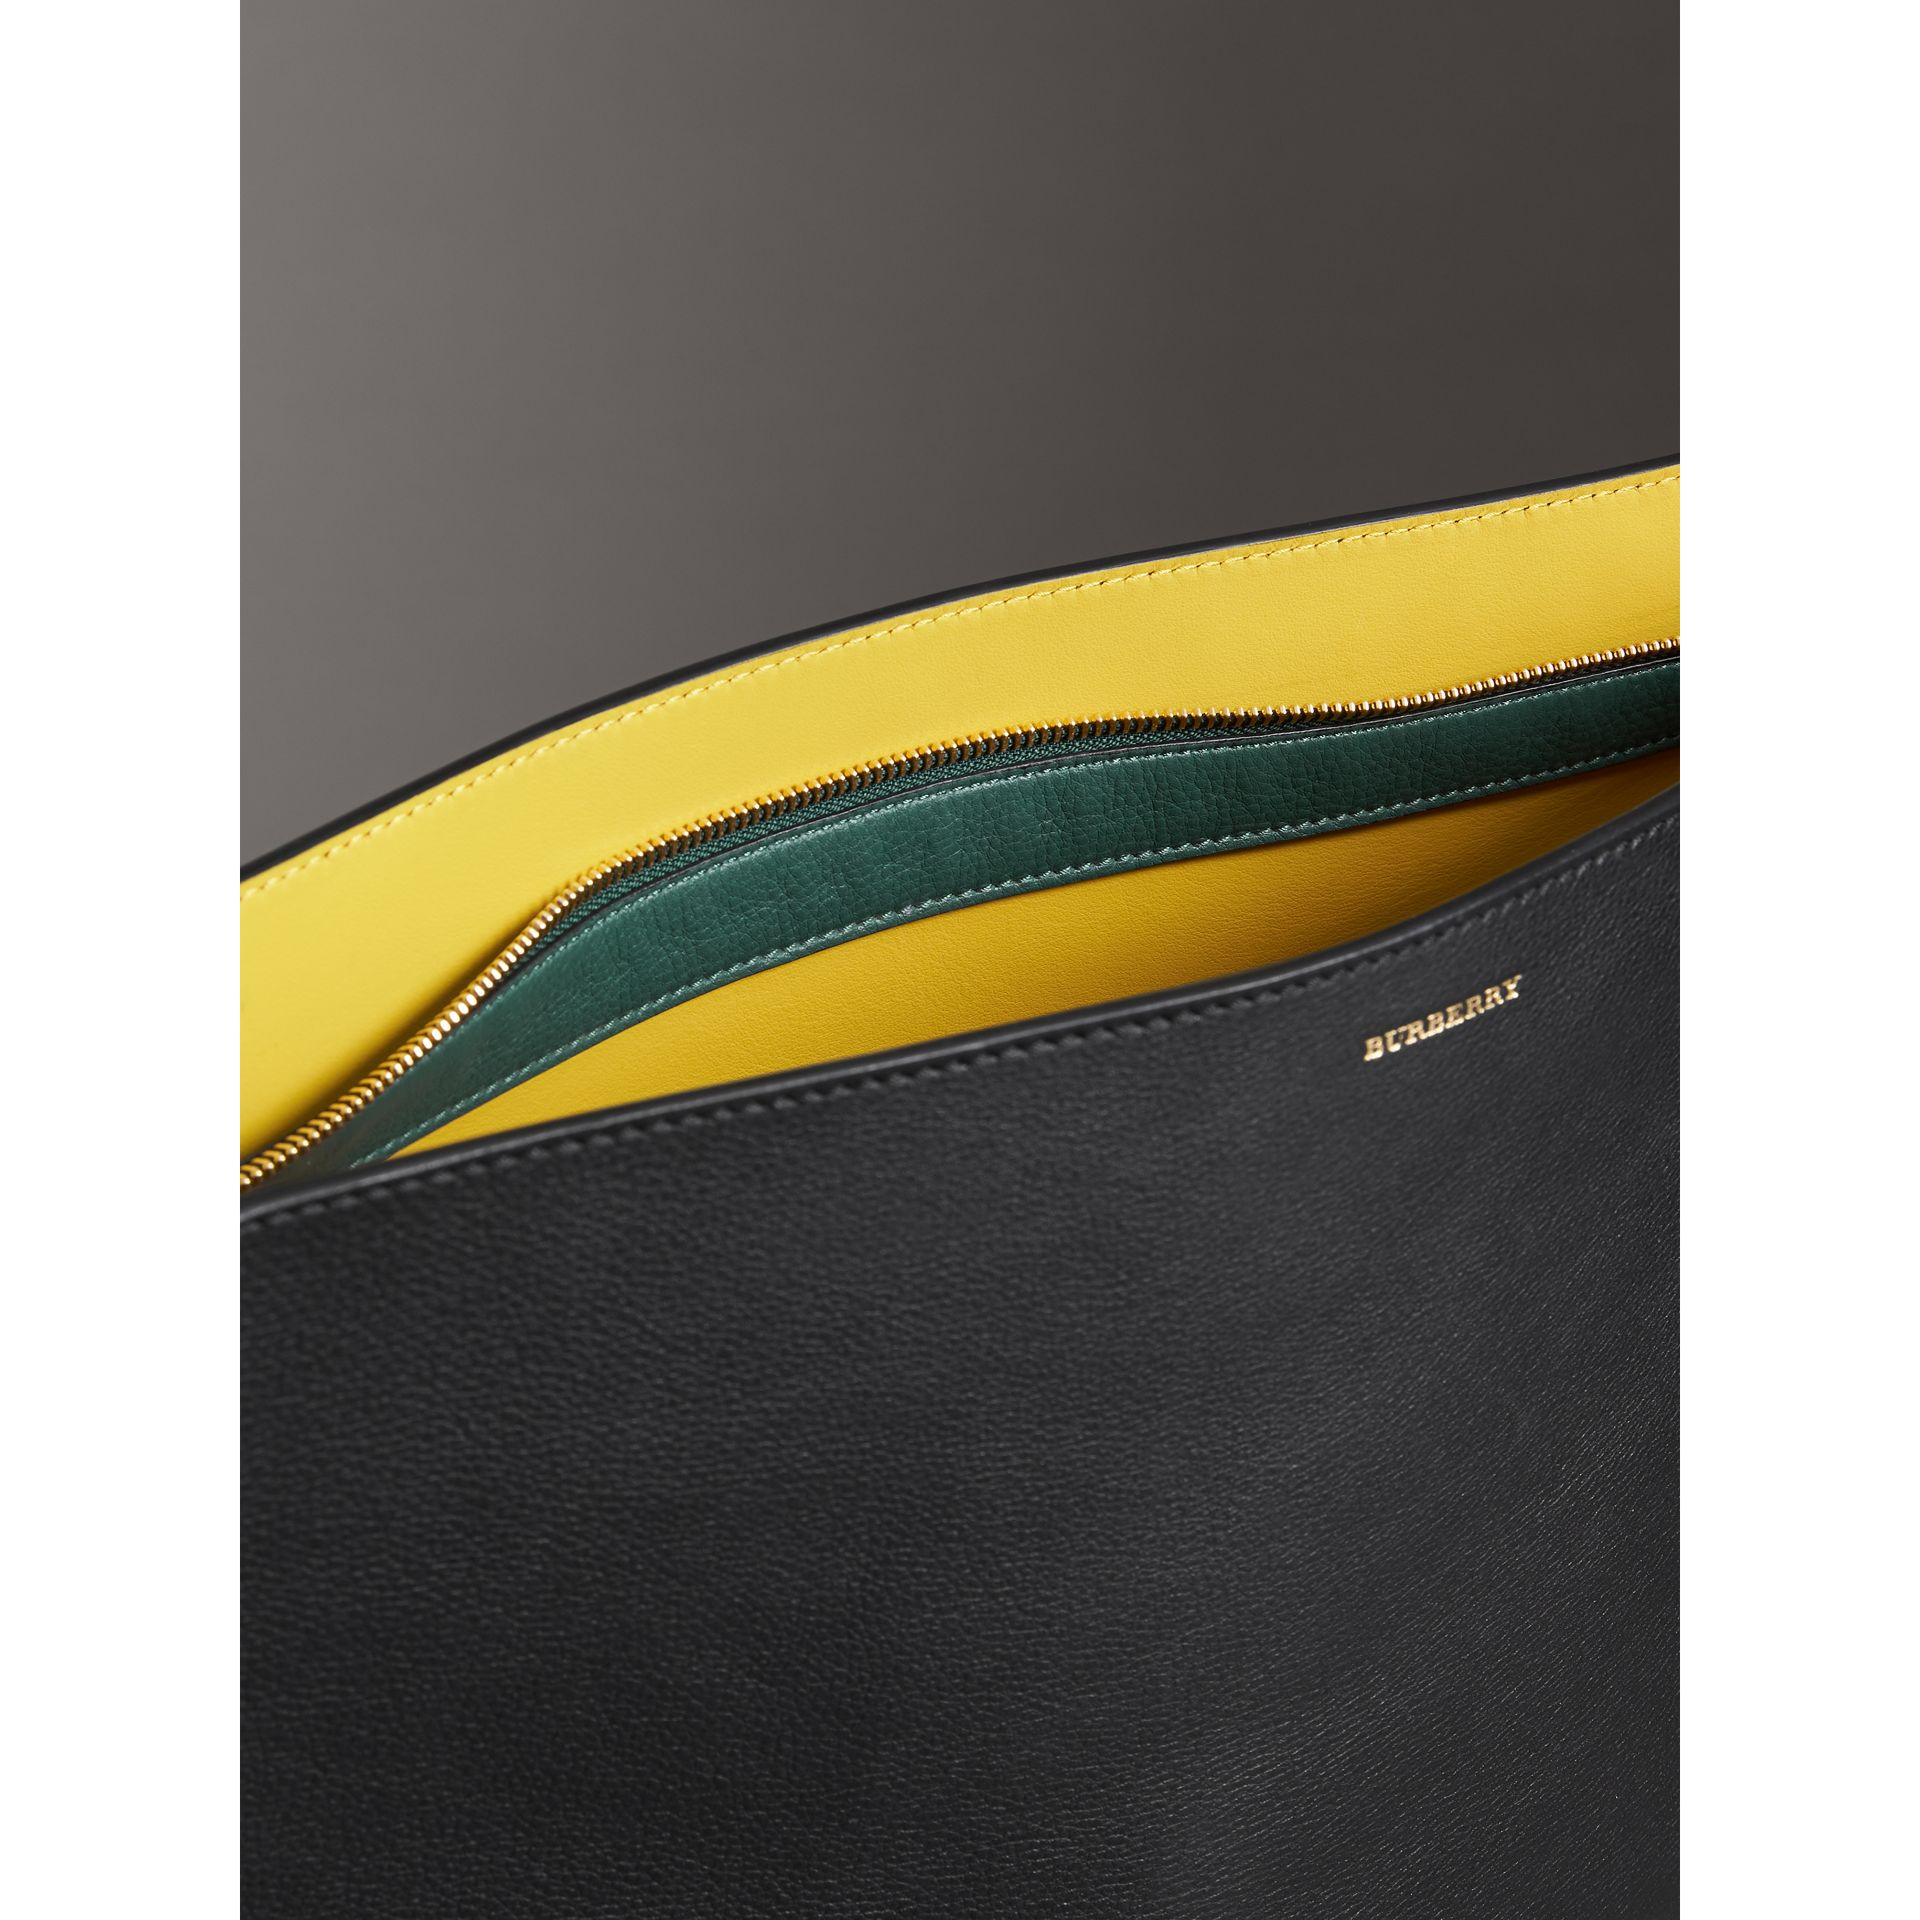 Large Tri-tone Leather Clutch in Black/sea Green - Women | Burberry - gallery image 3